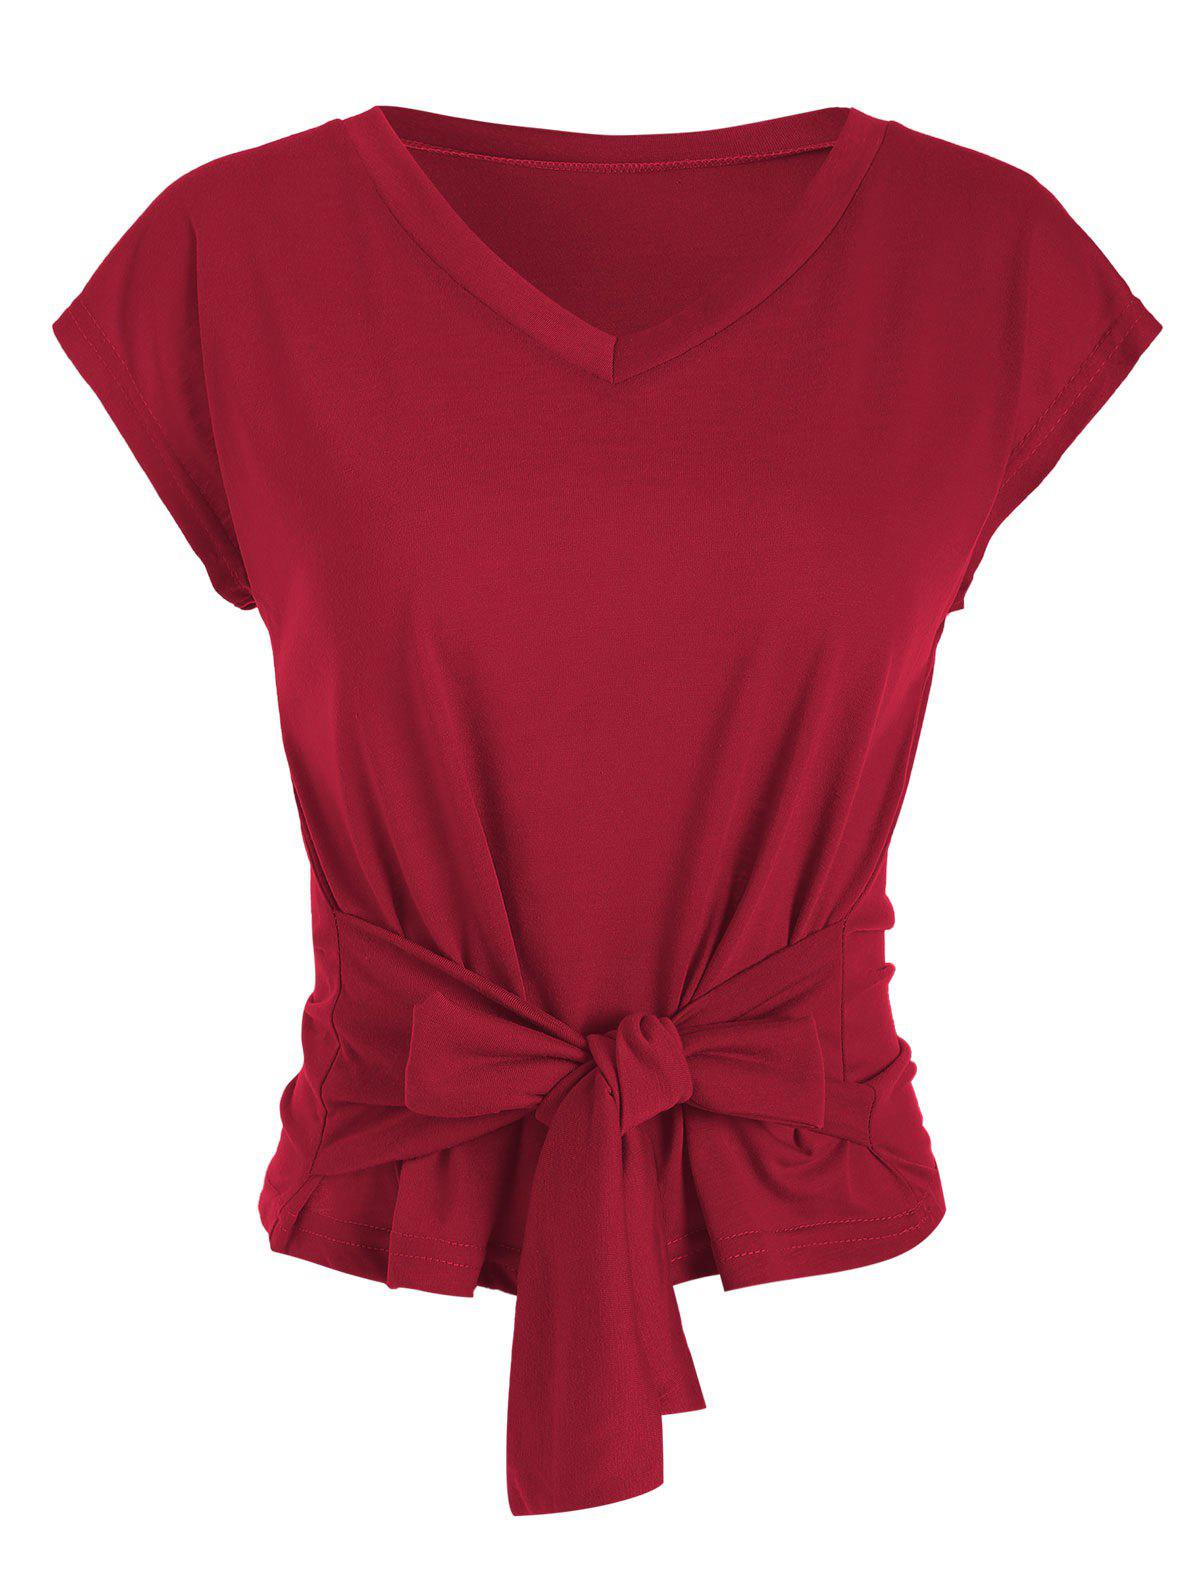 V Neck Solid Knotted Tee - RED WINE 2XL